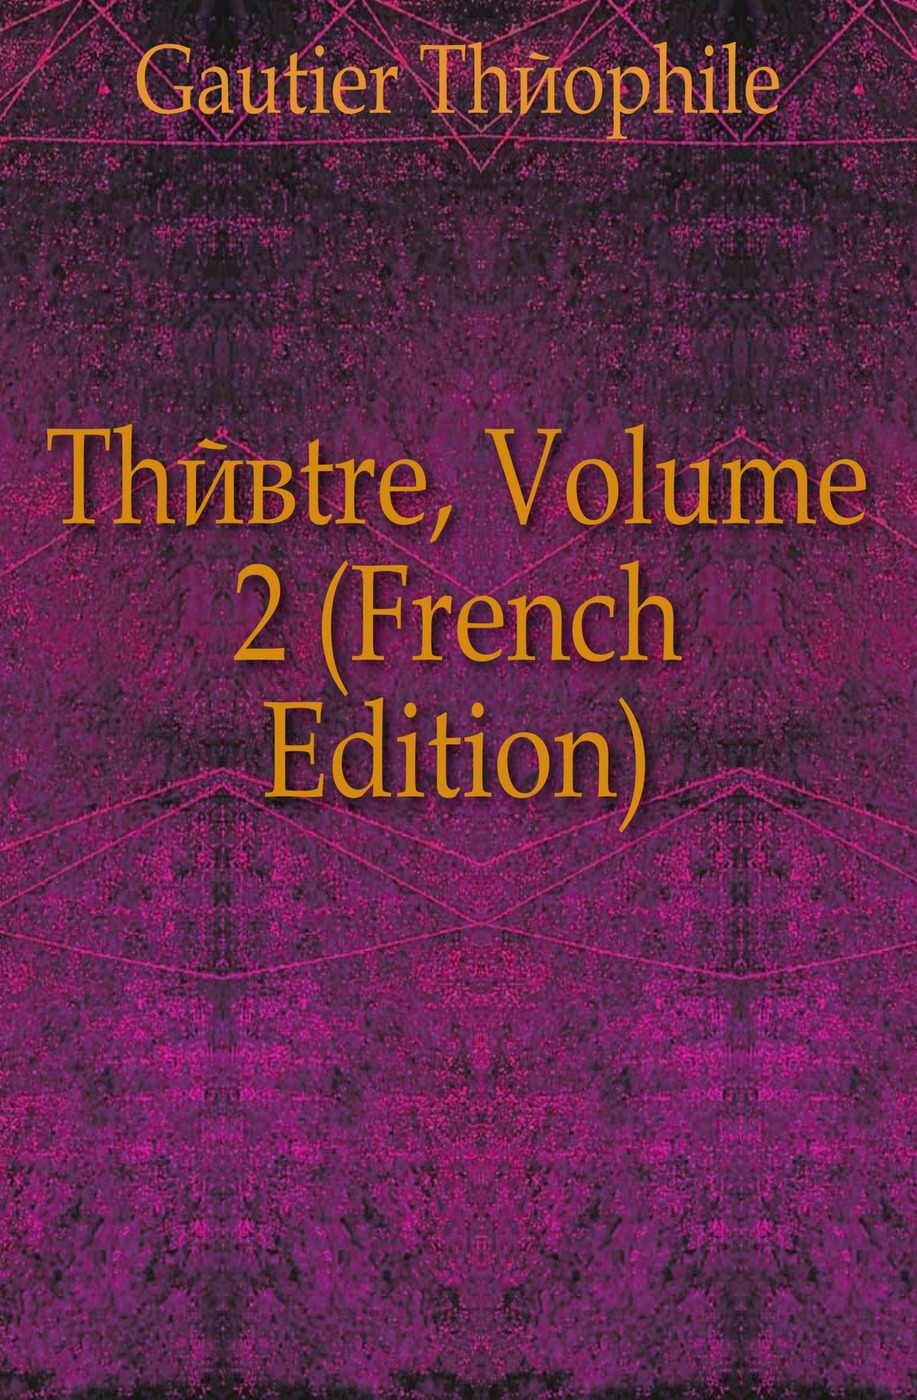 Théophile Gautier Theatre, Volume 2 (French Edition) théophile gautier le capitaine fracasse volume 2 french edition